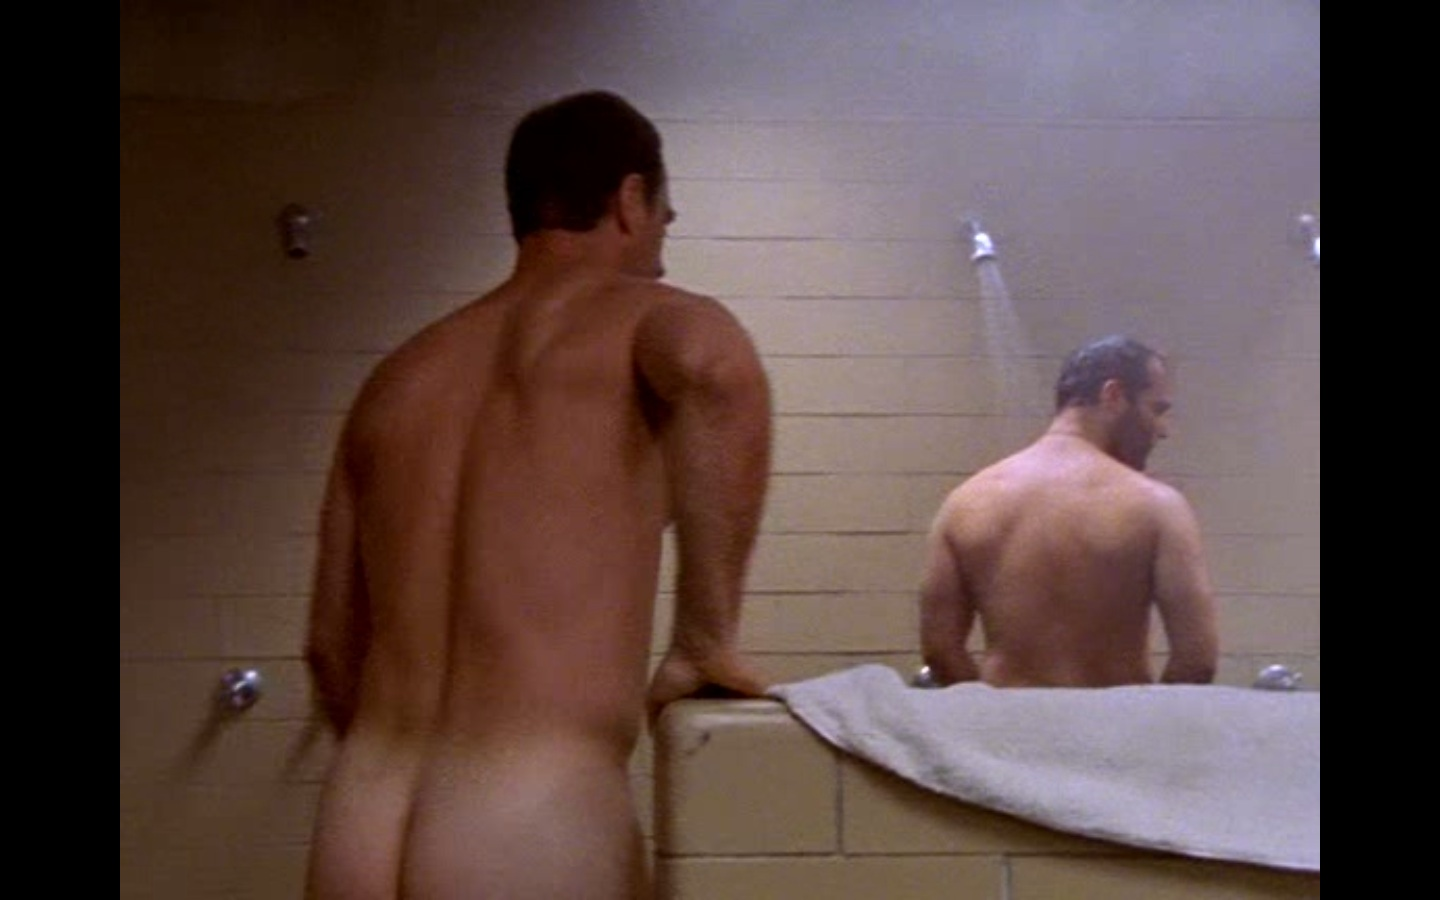 Agree with Christopher meloni naked pics for sale eventually necessary